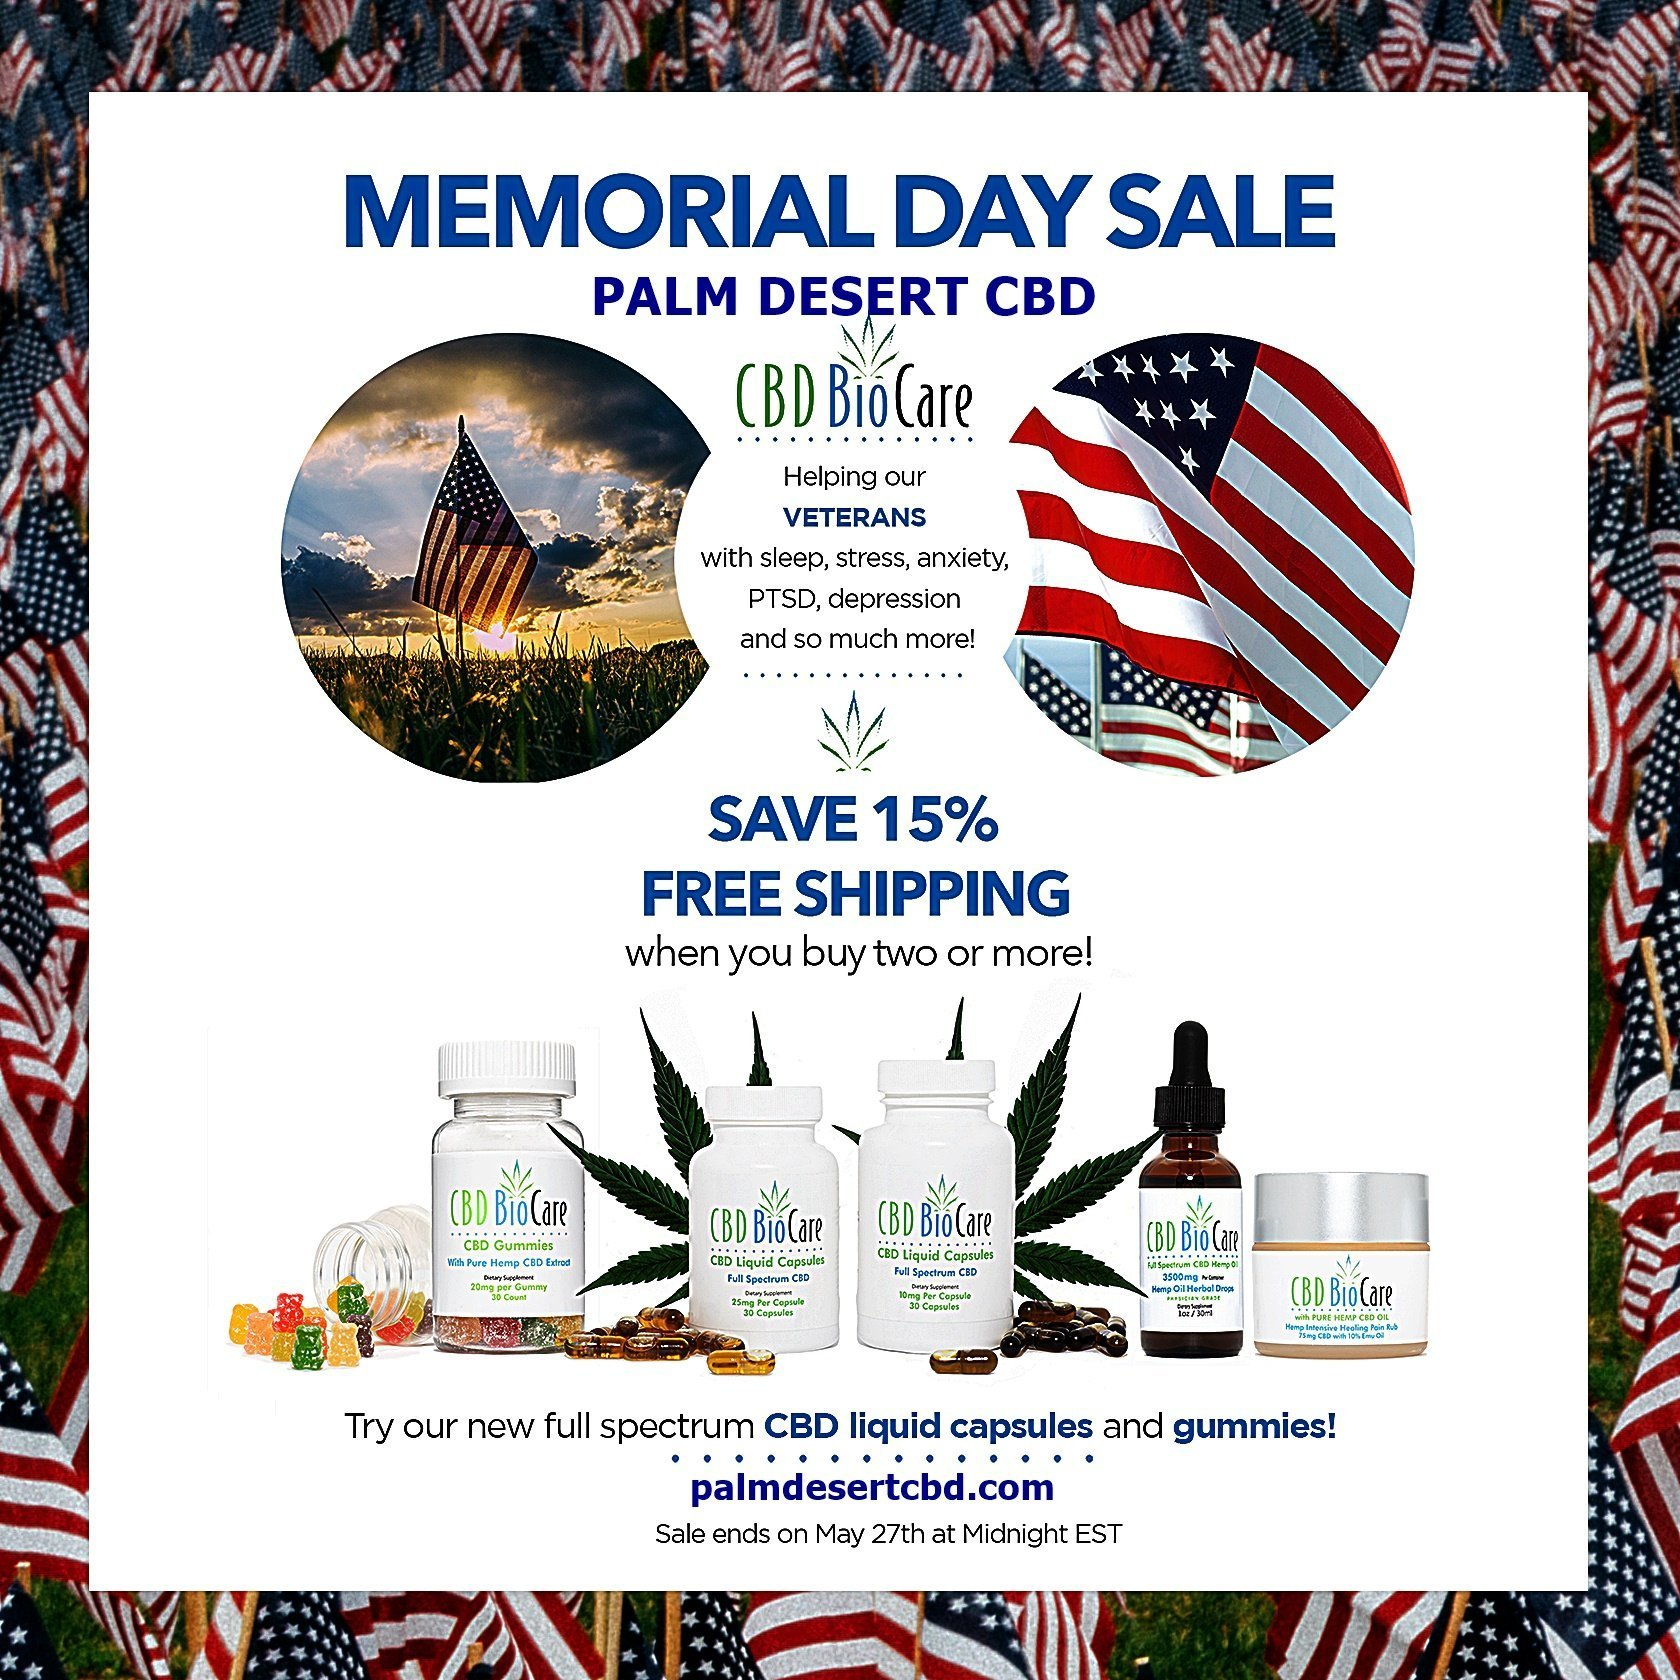 2019 memorial day sale cbd biocare